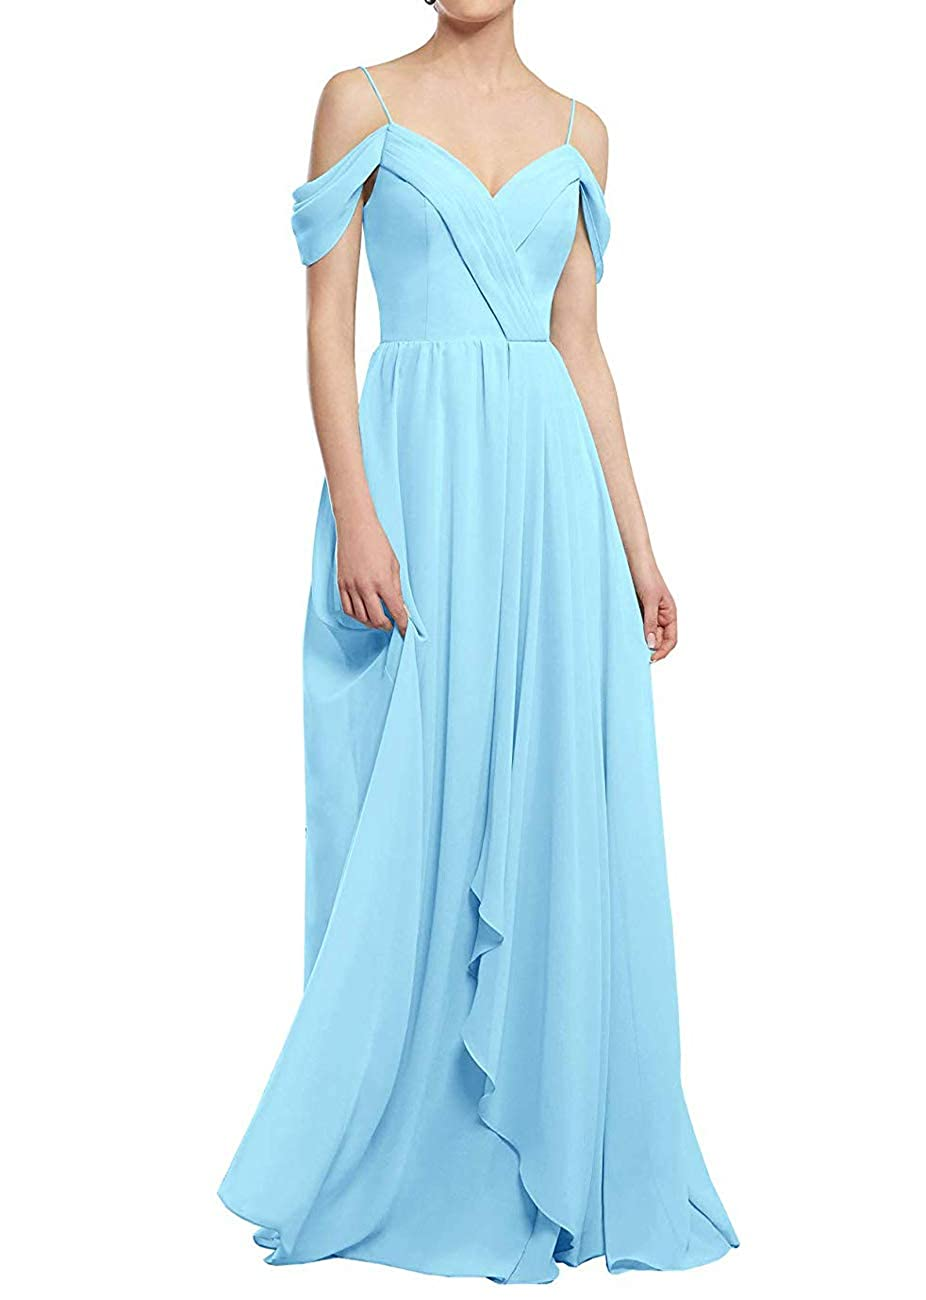 Ice bluee PrettyTatum ALine Cold Shoulder Long Party Prom Gown Sweetheart Neckline Bridesmaid Dresses